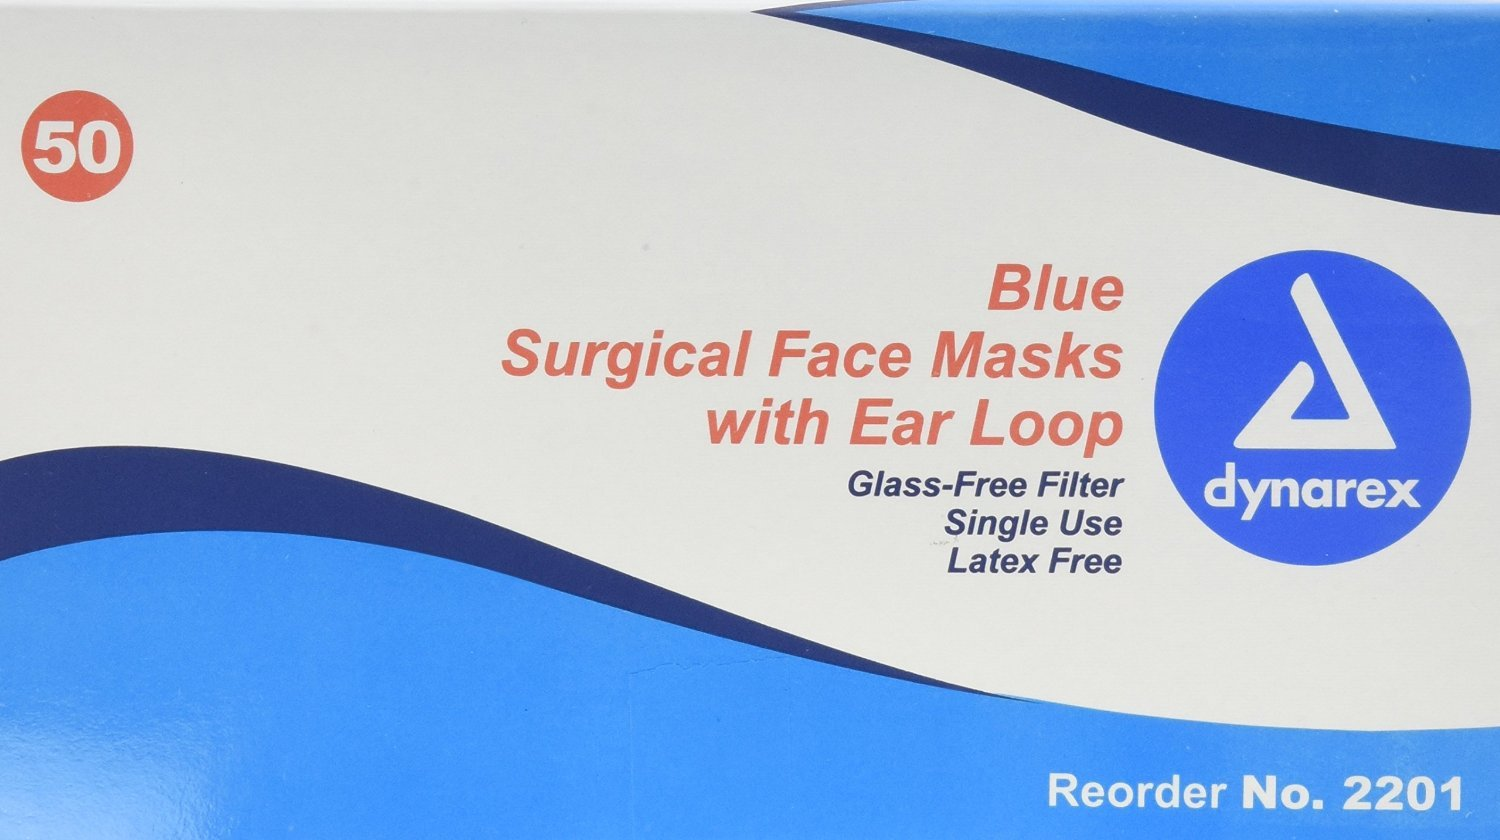 Dynarex Disposable Ear Loop Face Mask, Blue, 200 Count by Dynarex